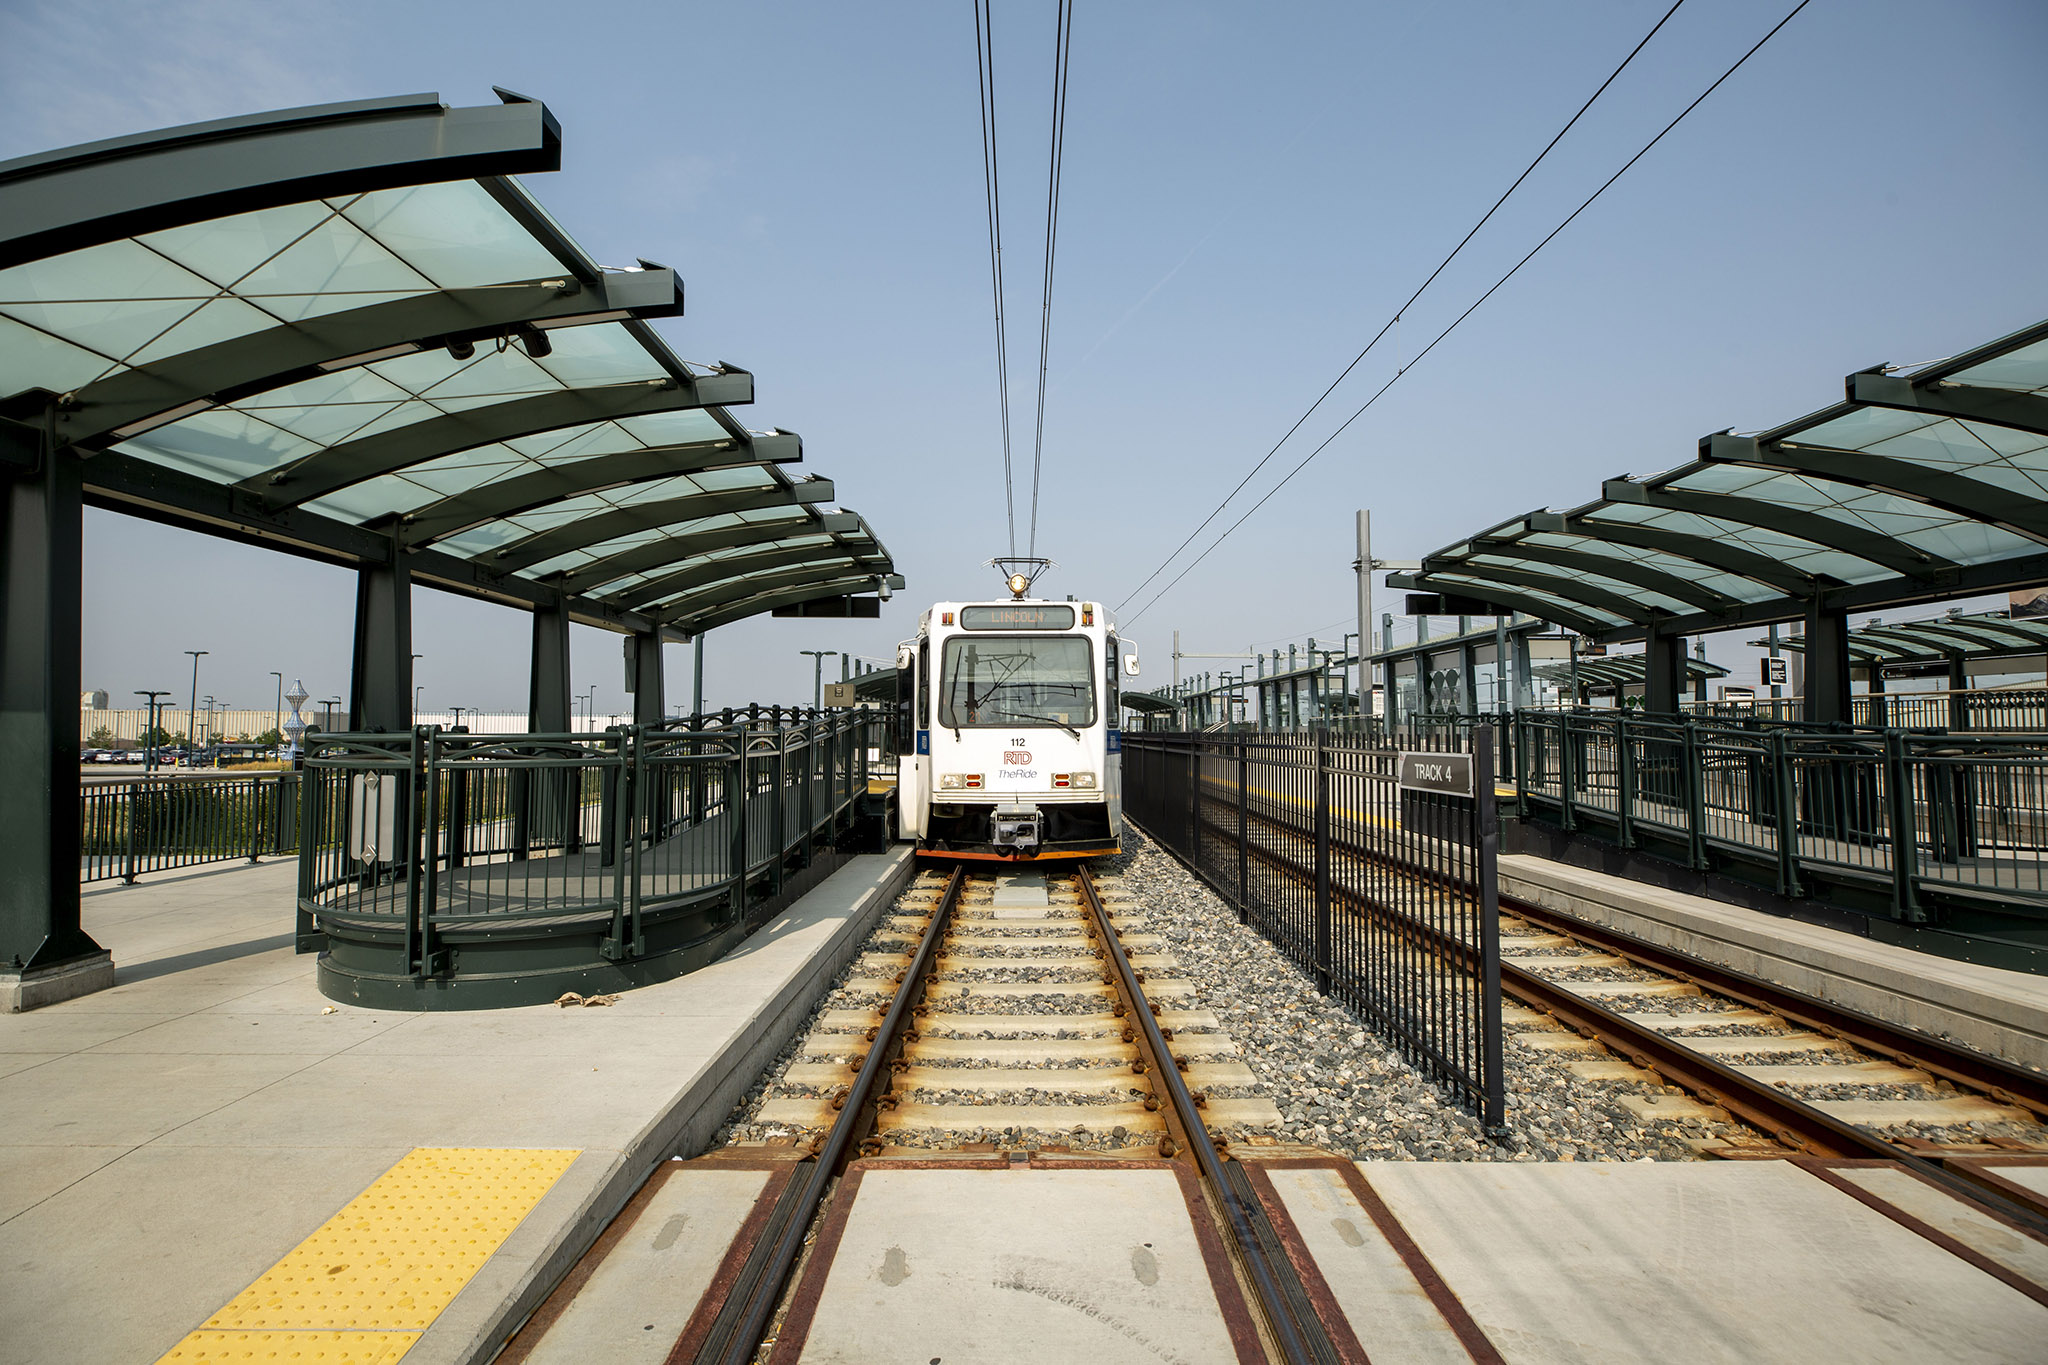 A light rail train waits for passengers at RTD's Peoria Street station in Aurora. Aug. 10, 2021.